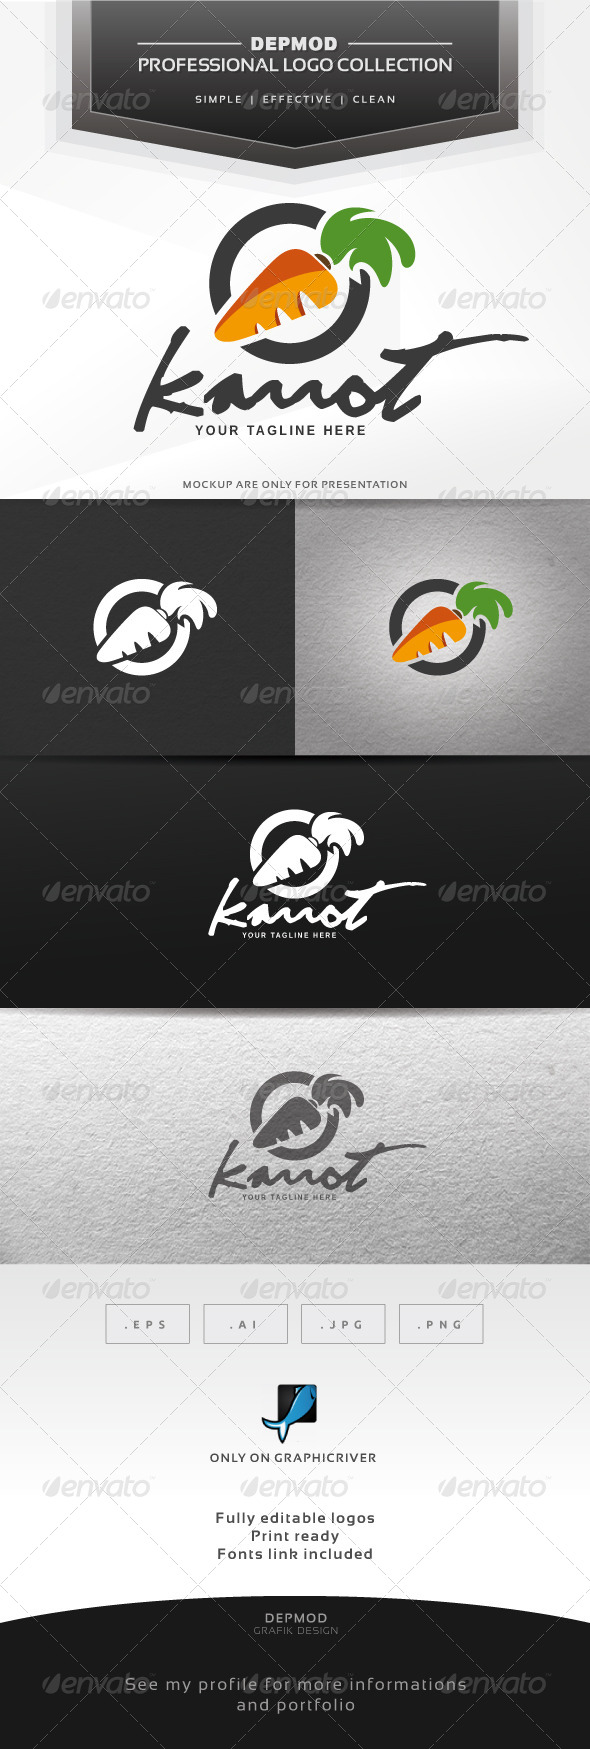 Karrot Logo - Food Logo Templates